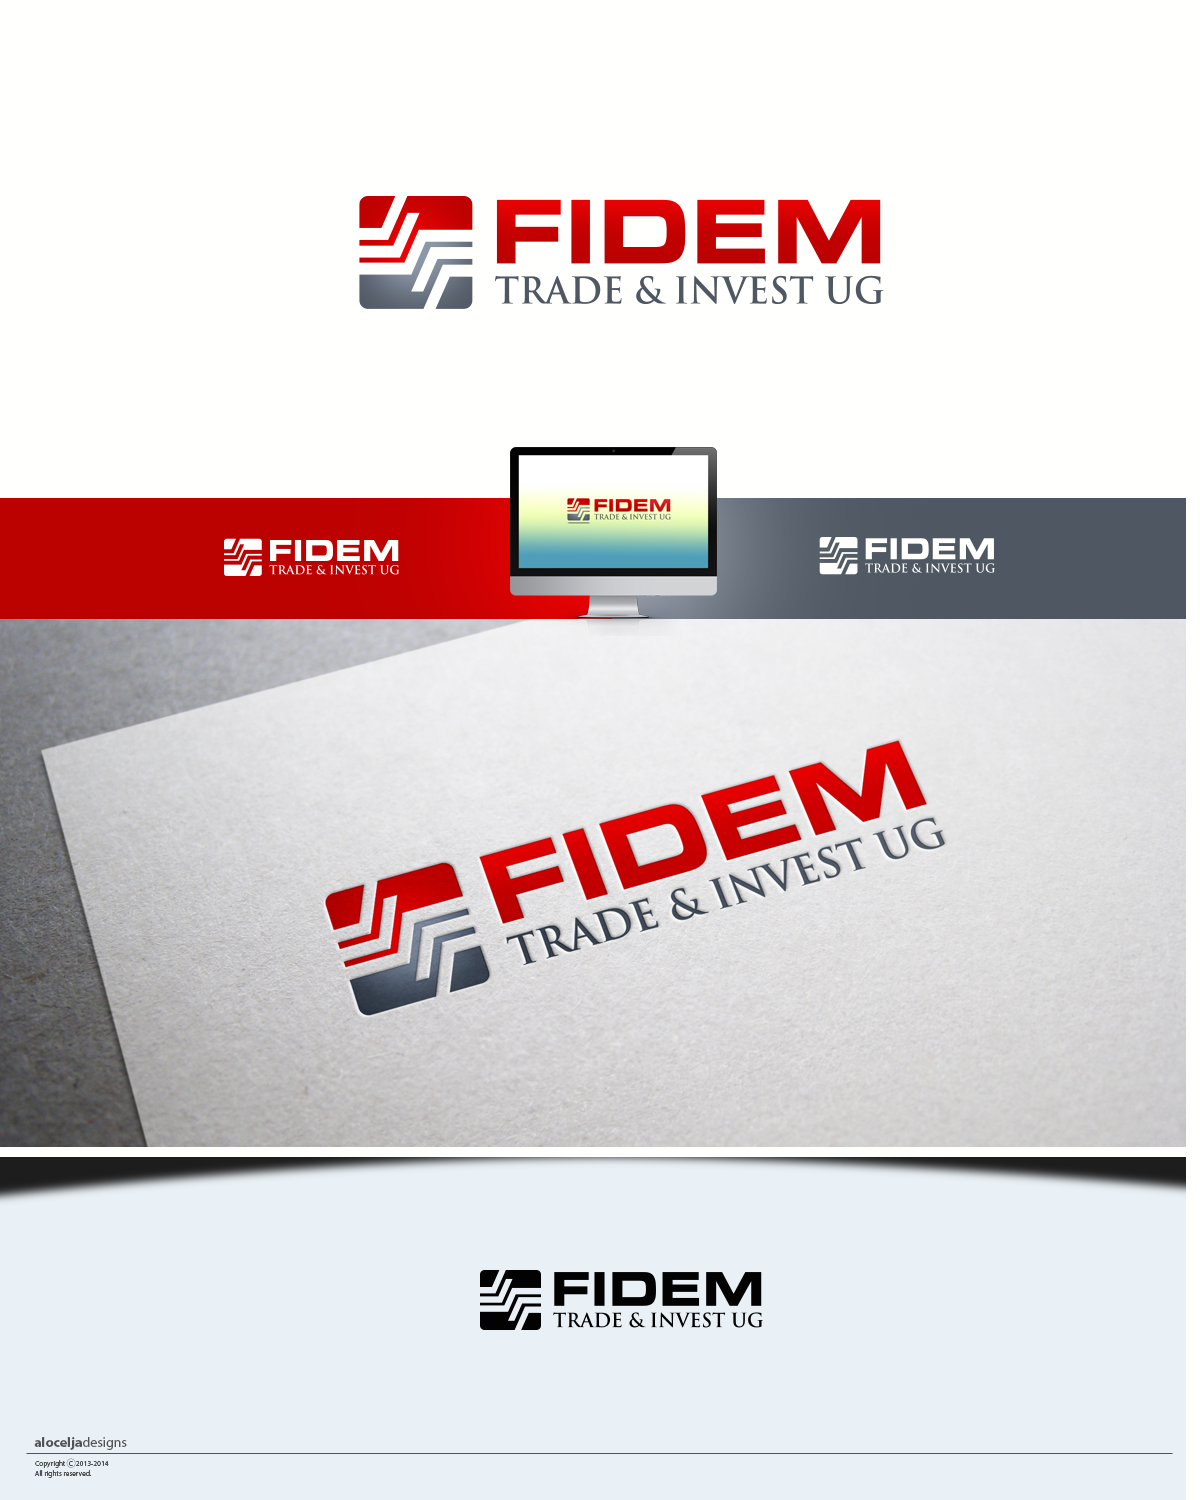 Logo Design by alocelja - Entry No. 645 in the Logo Design Contest Professional Logo Design for FIDEM Trade & Invest UG.